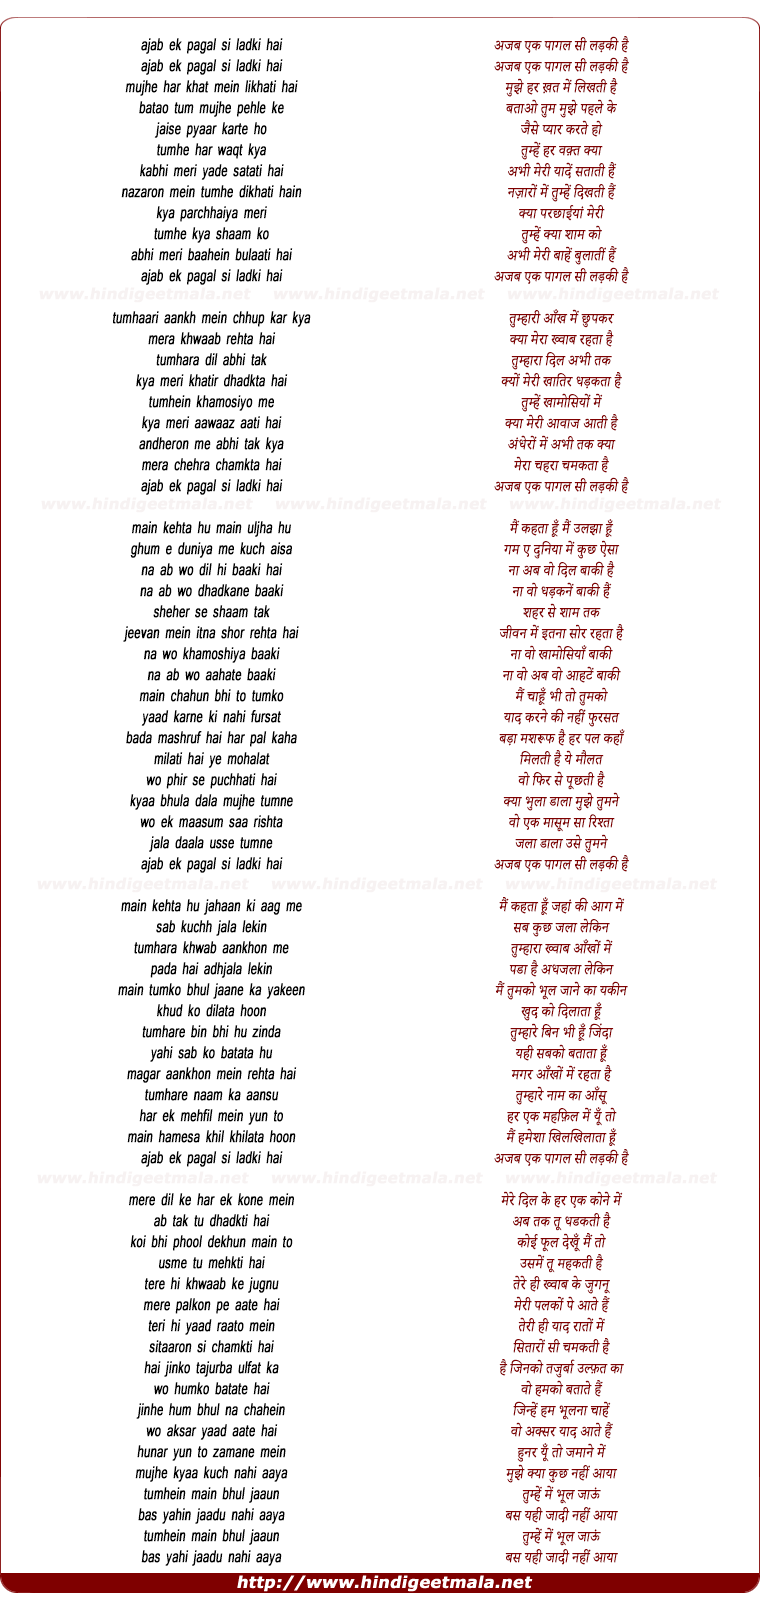 lyrics of song Ajab Ek Pagal Si Ladki Hai